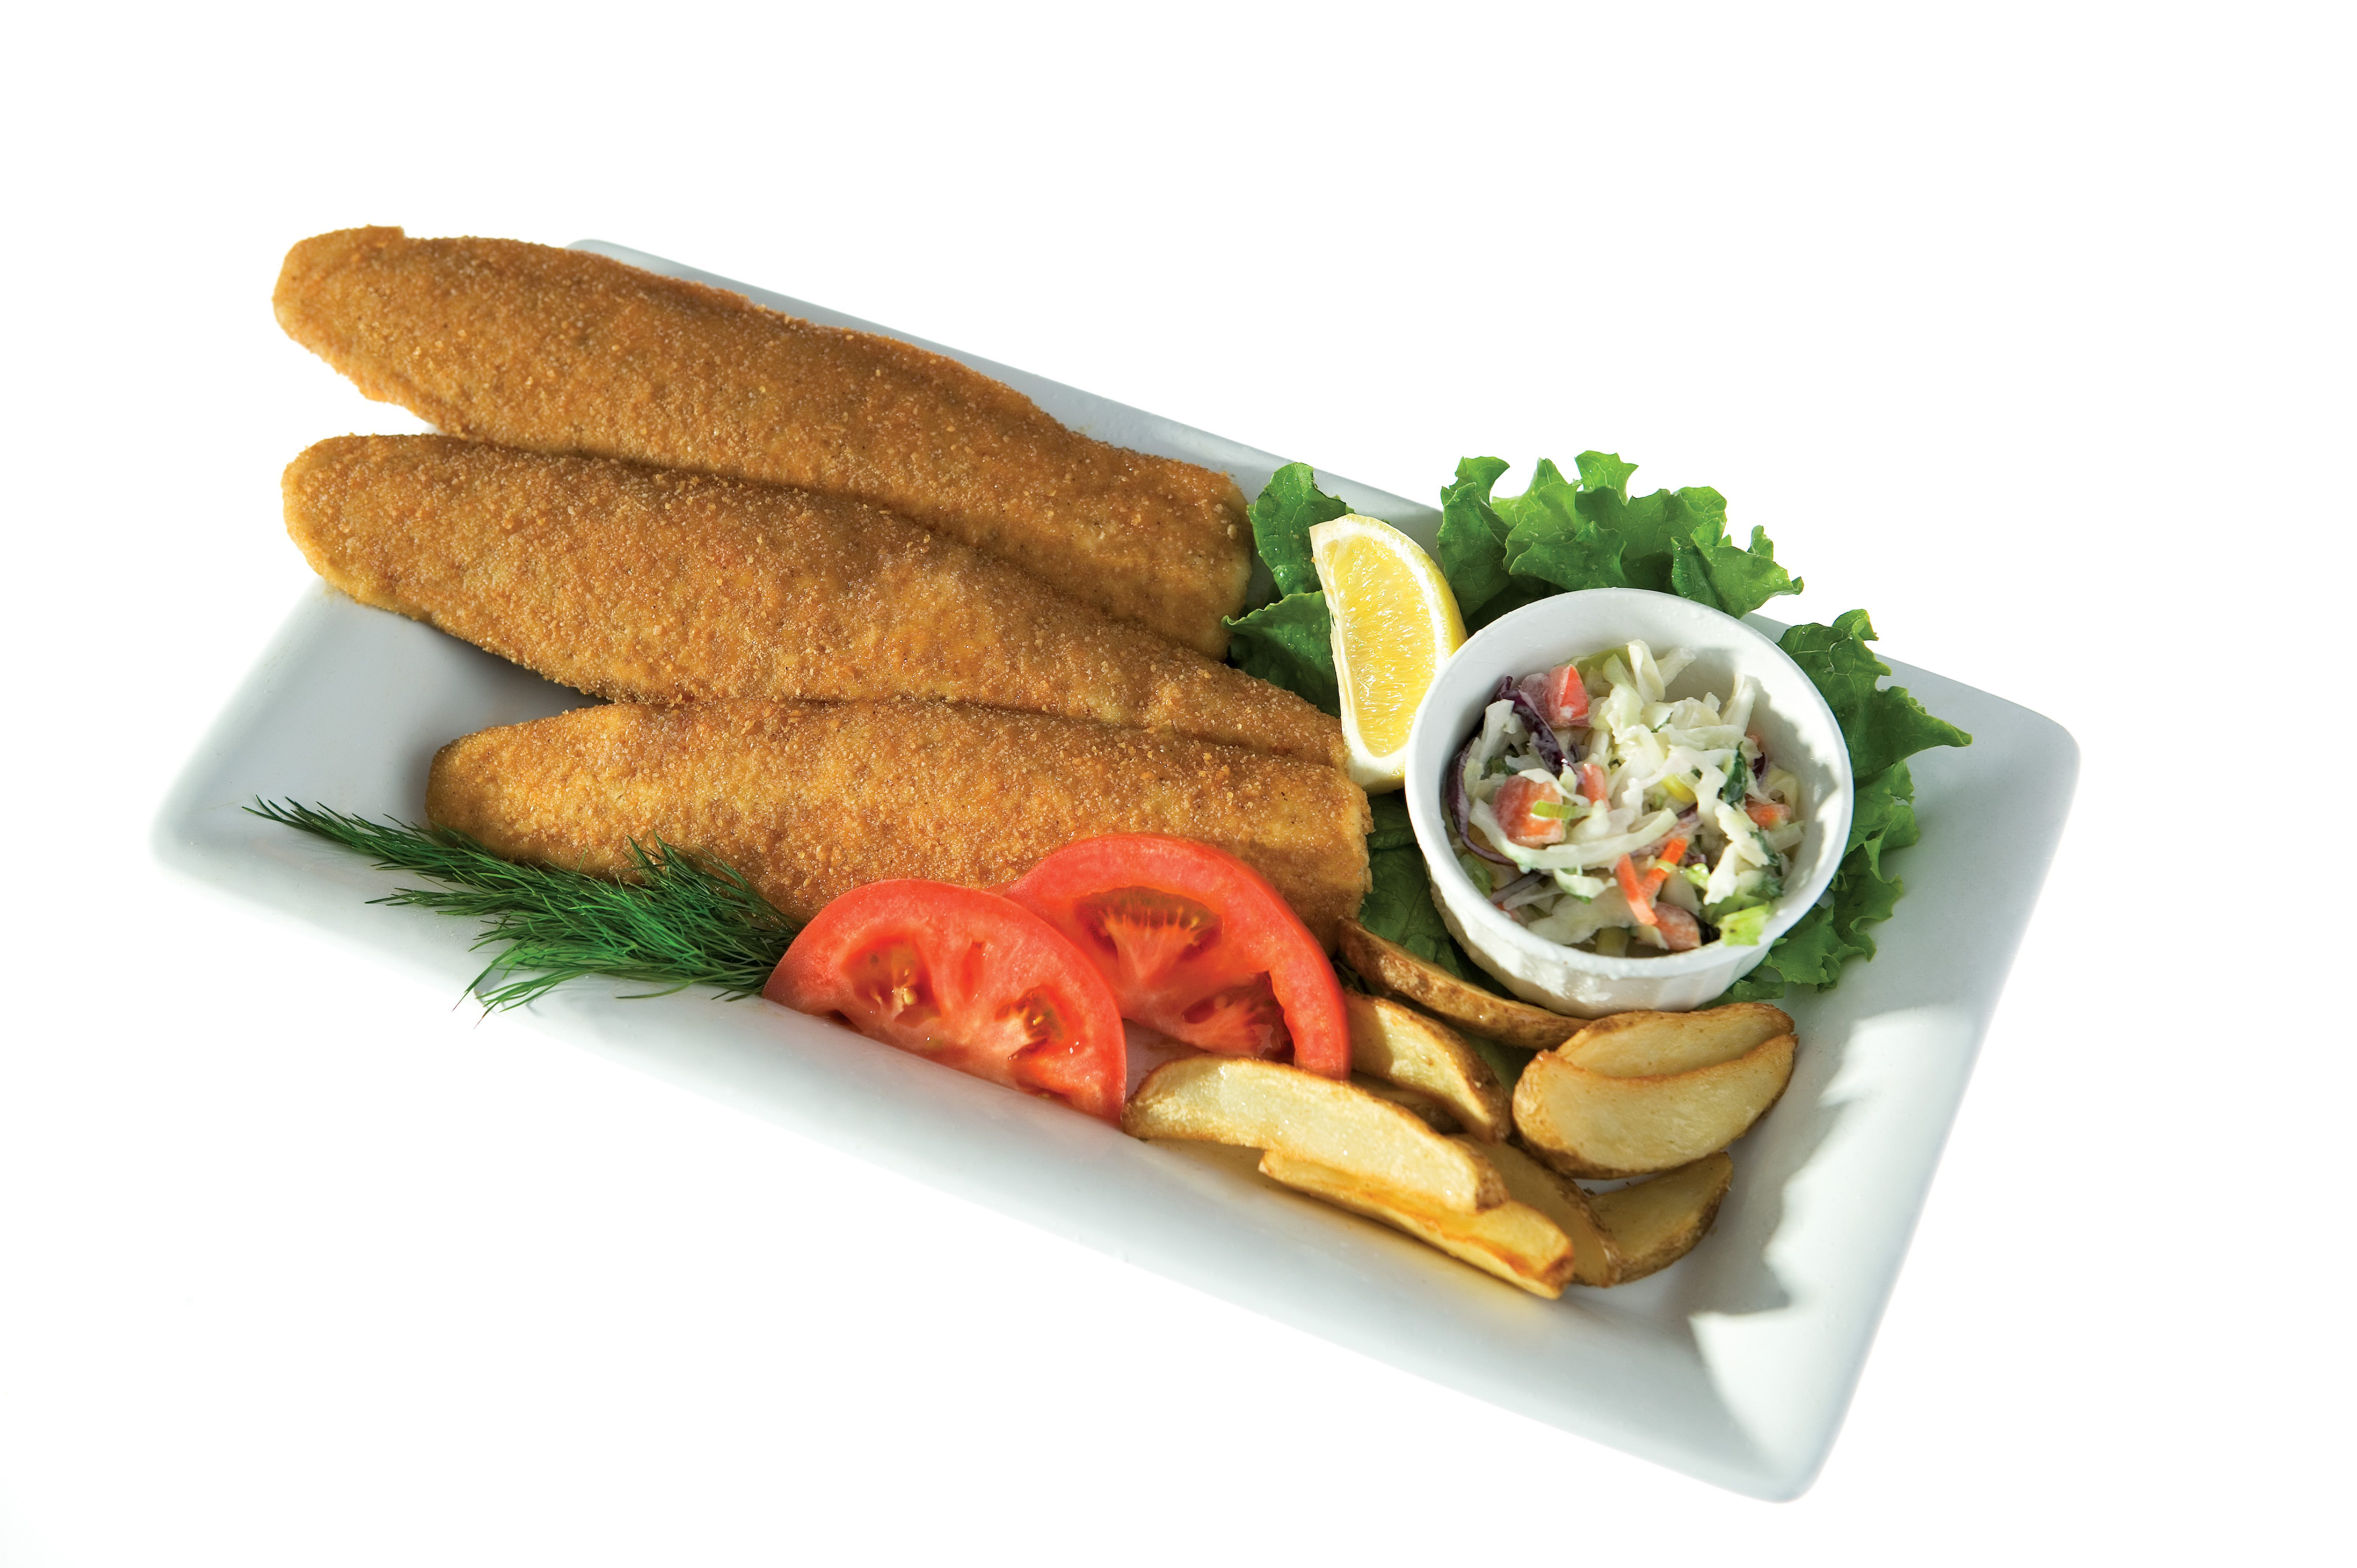 Breaded Fish Products on white plate